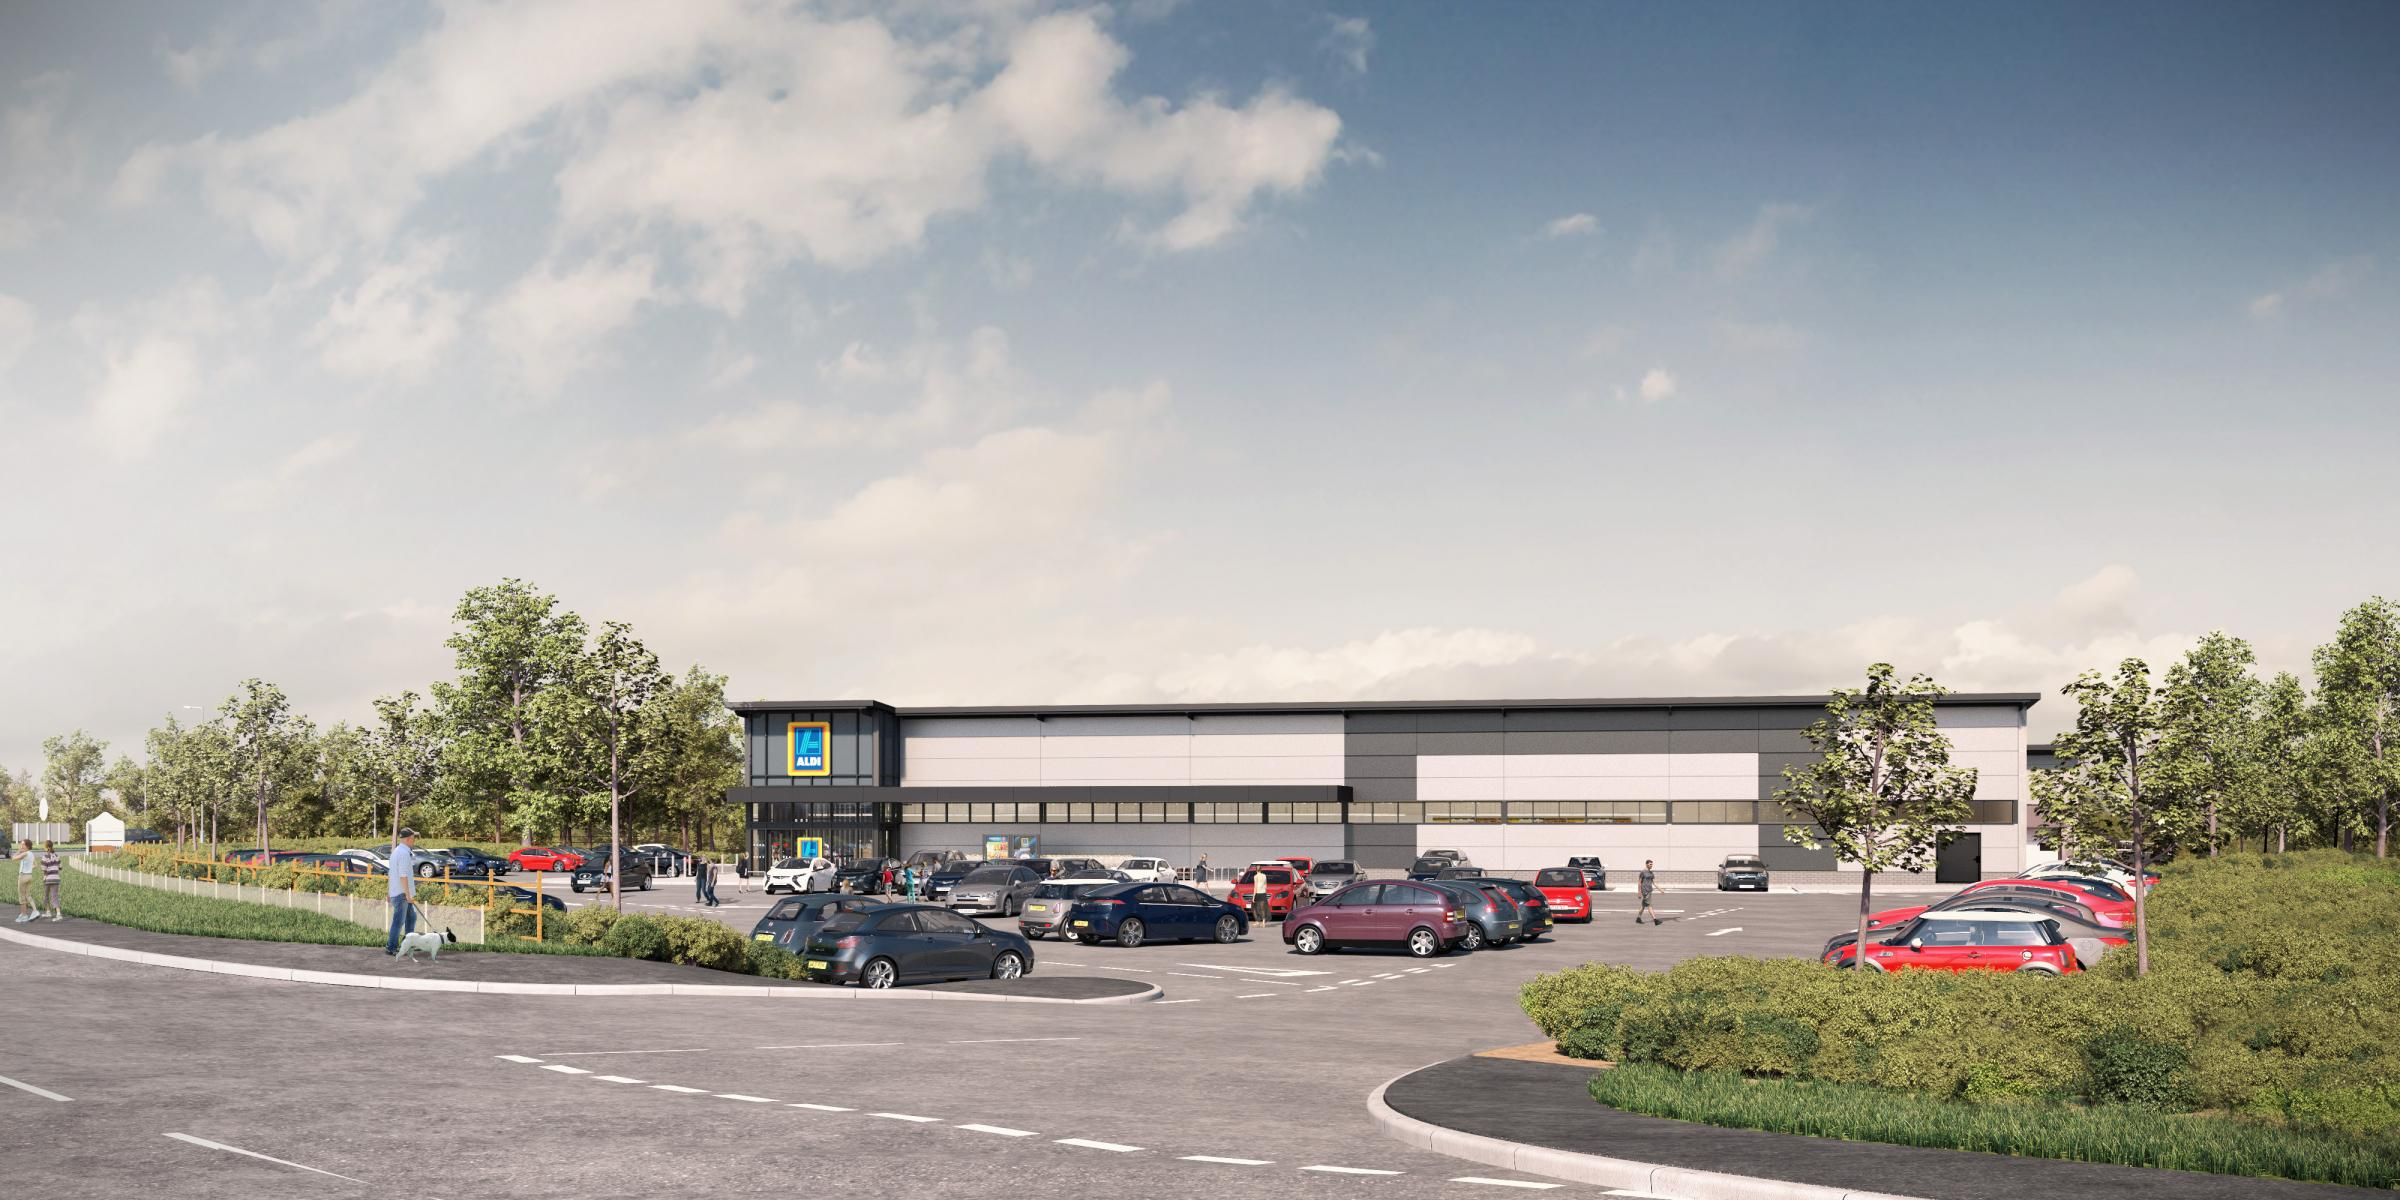 The artist impression of a proposed Aldi store in Wrexham Road